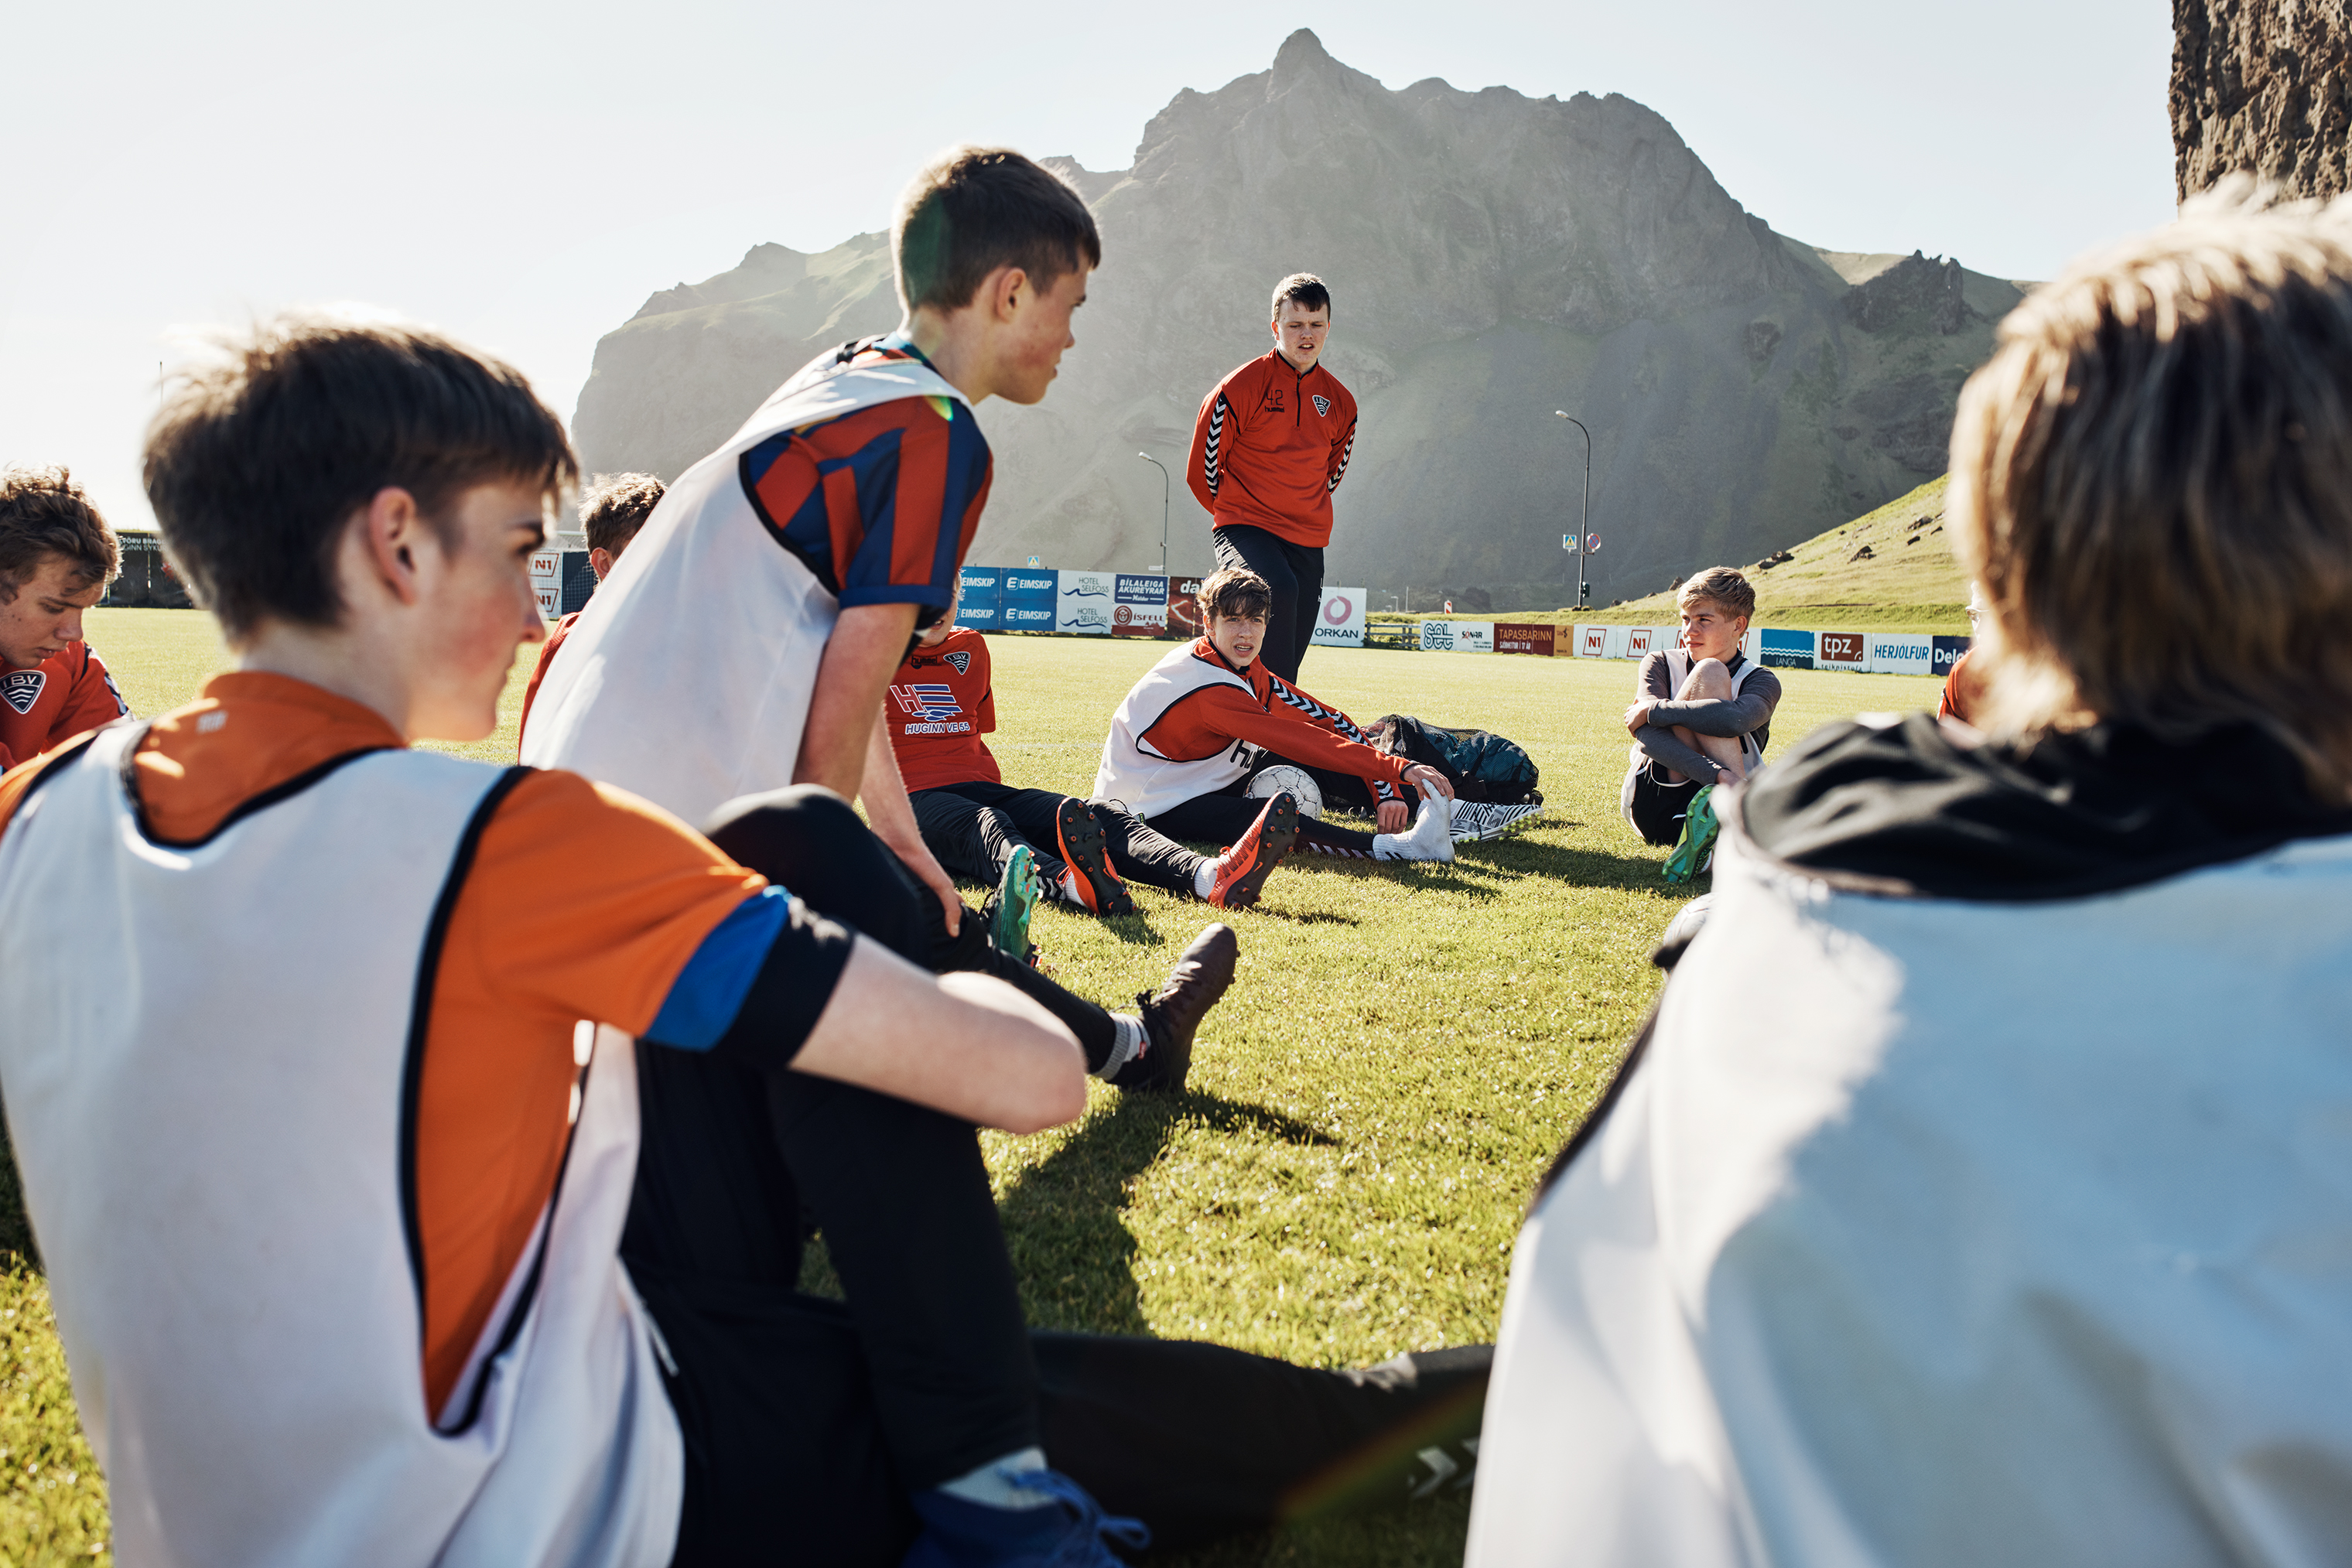 Boys rest after practice on Heimaey—or Home Island (pop. 4,500)—the largest in Iceland's Vestmannaeyjar archipelago, on June 1.